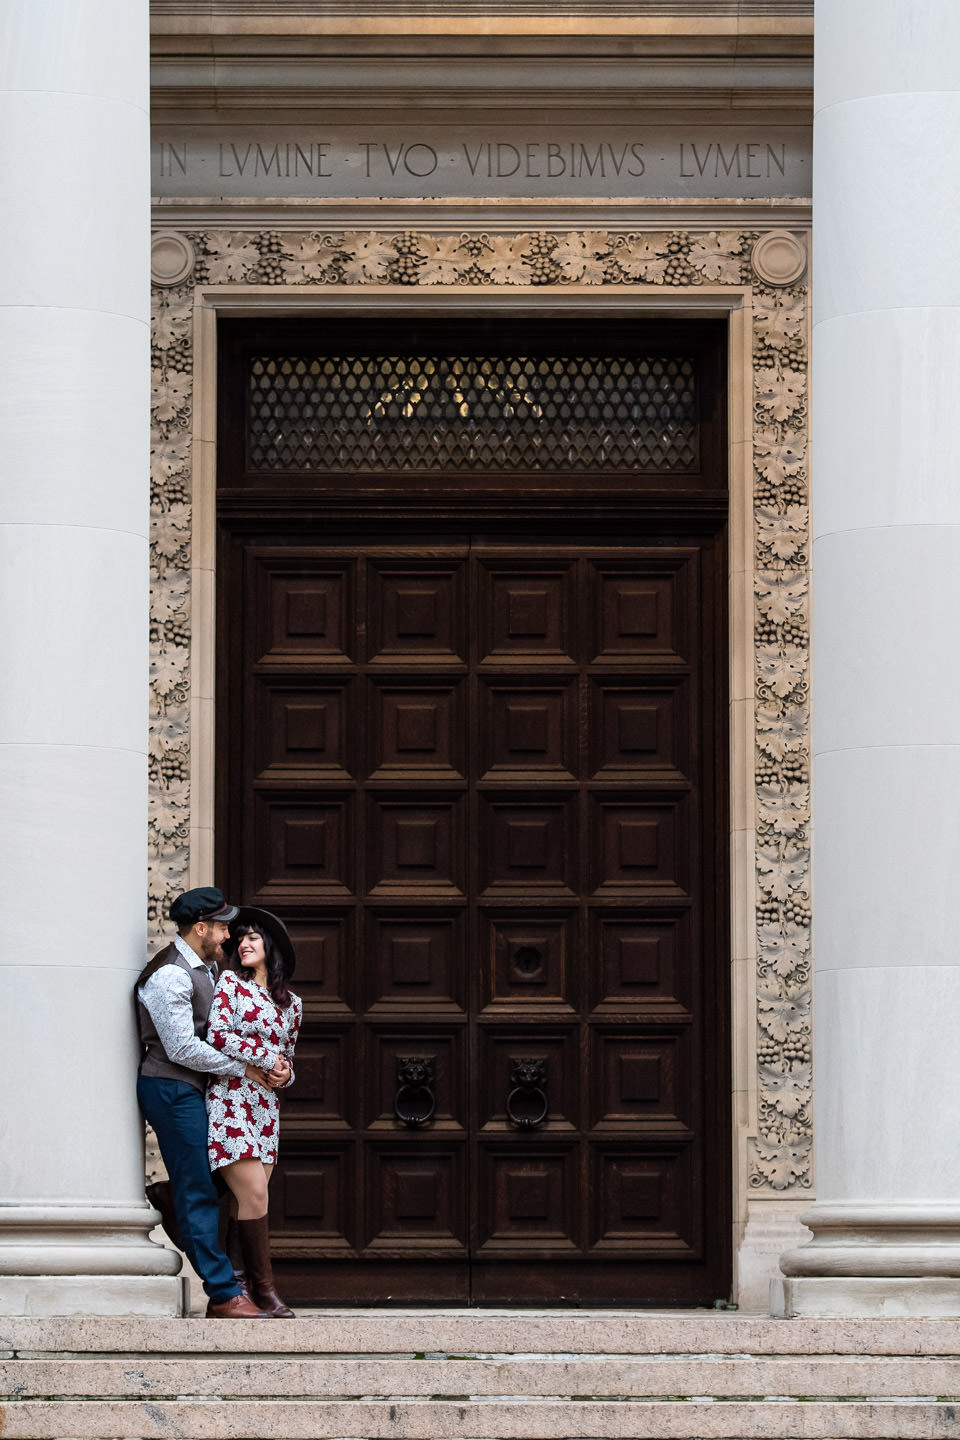 couple poses by big brown wooden door at the columbia university campus in nyc for their engagement session